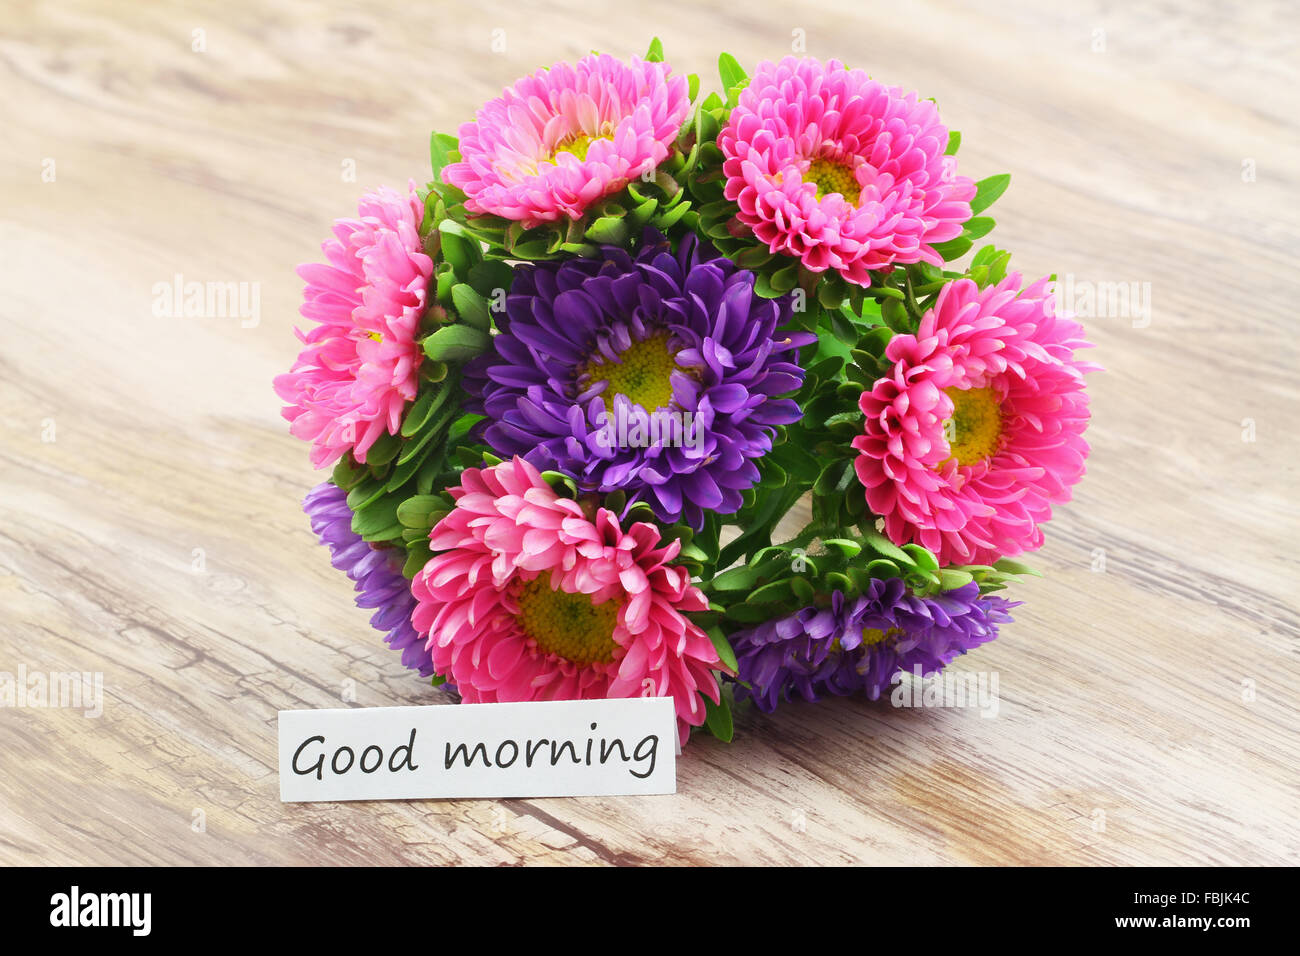 Good morning card with colorful aster flowers bouquet Stock Photo ...